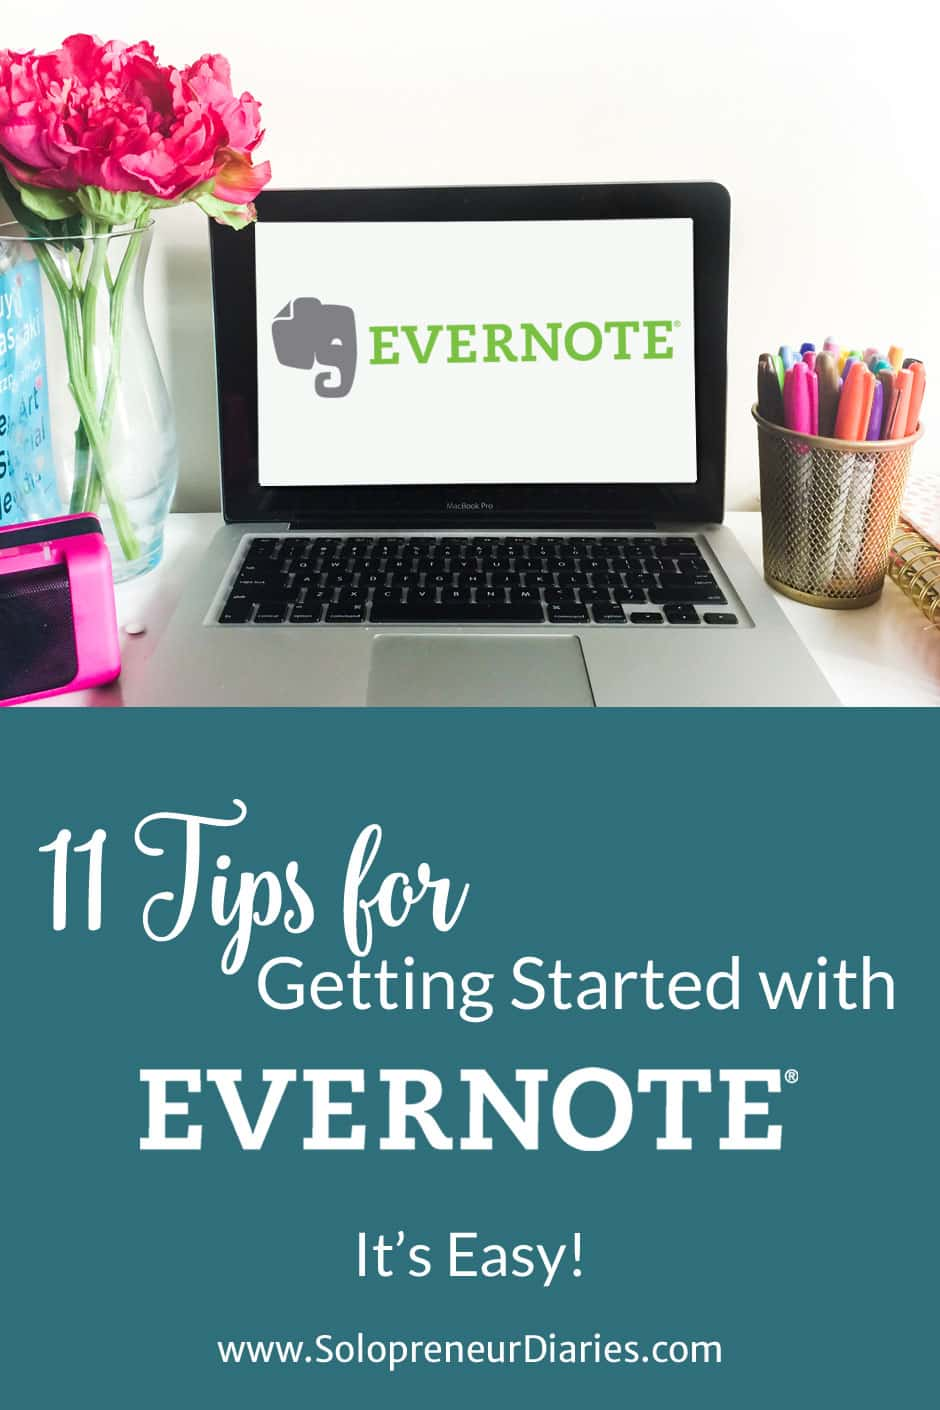 "I've been using Evernote since 2009 and I can't imagine how disorganized my life would be without this program. It's billed as a tool to help you ""Remember Everything."" If you aren't using Evernote yet, it's easy to get started. Follow the 11 tips that I'm sharing today and you'll be up and running in no time."